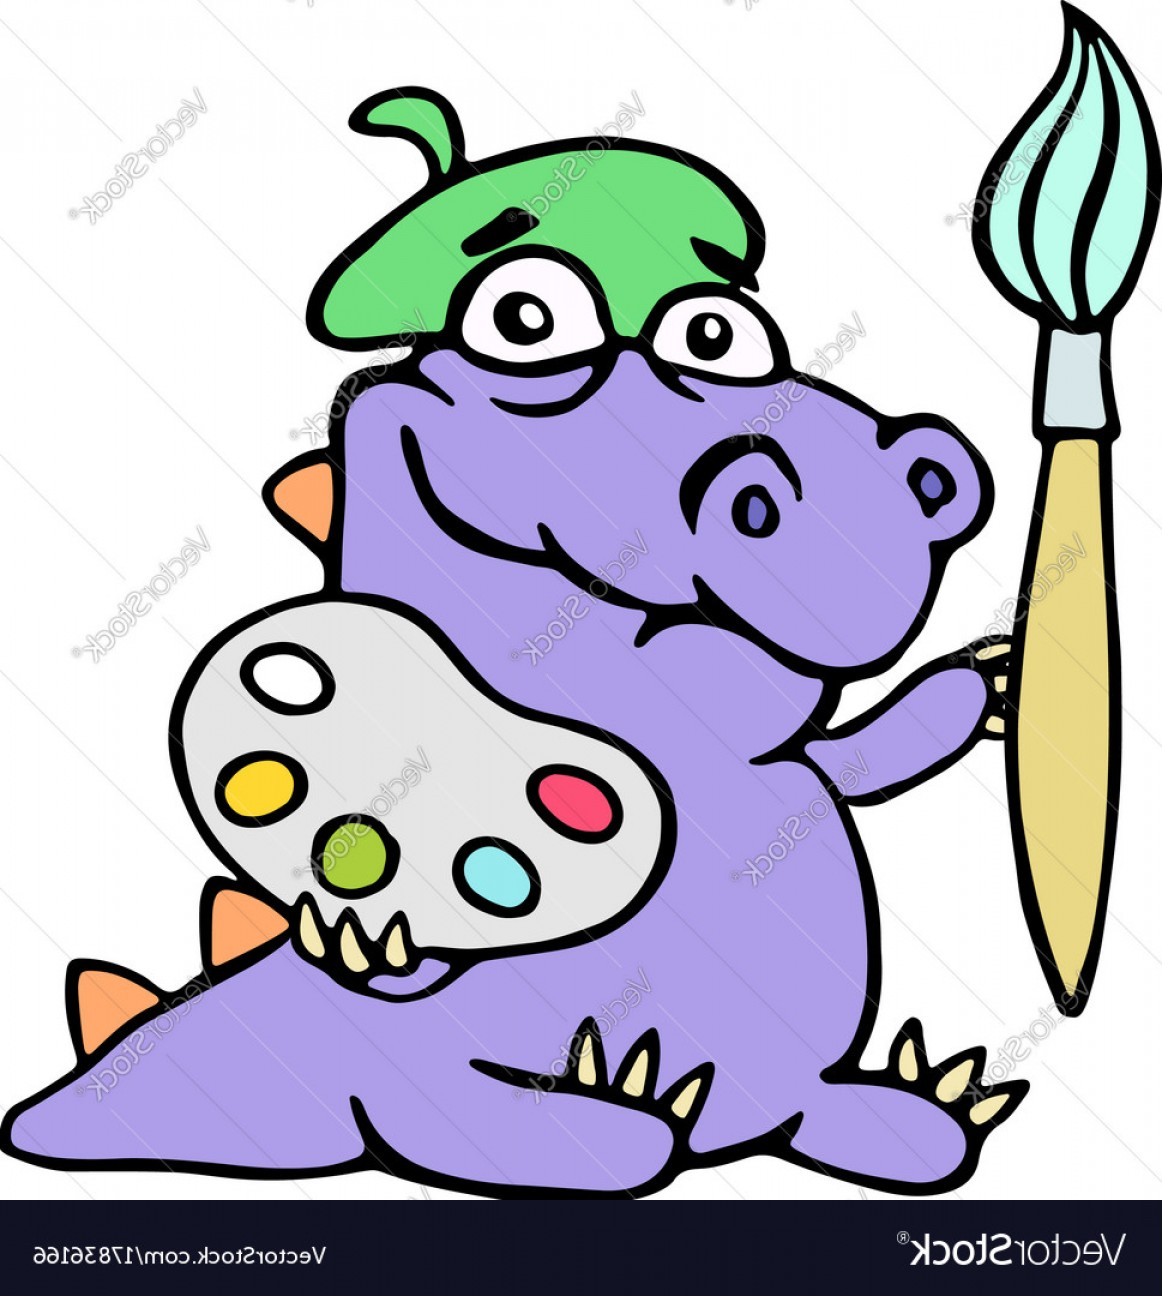 Chibi Vector The Crocodile: Cartoon Croc Artist Painter With Brush And Vector